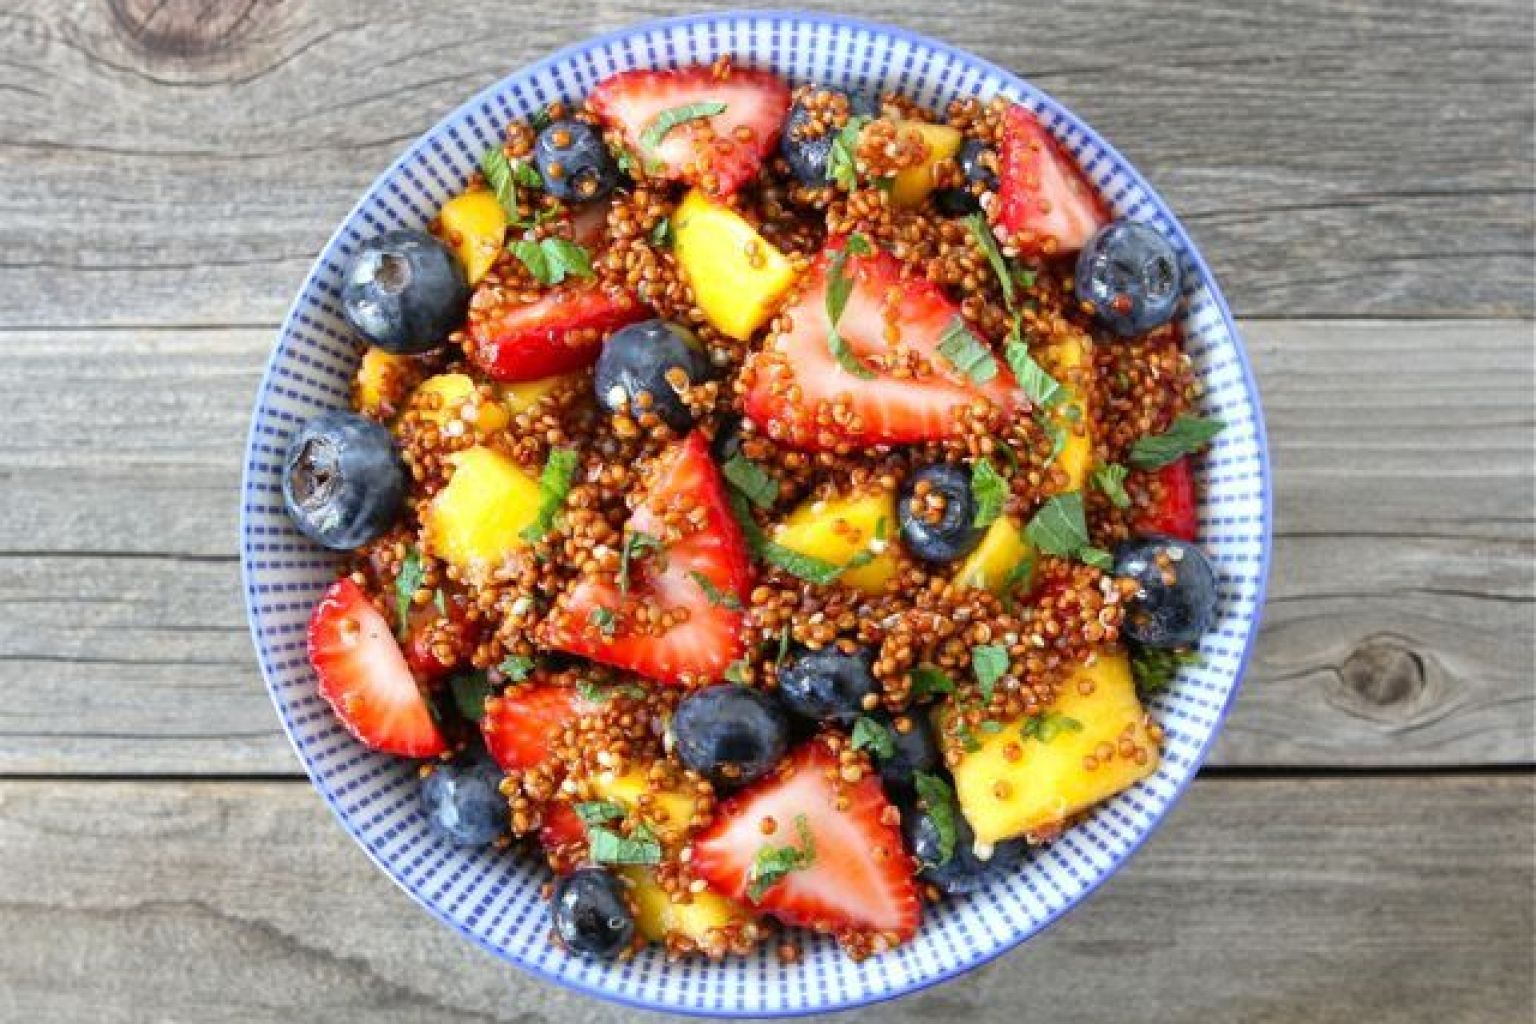 Fruit Salad Recipes That Aren't Boring | HuffPost